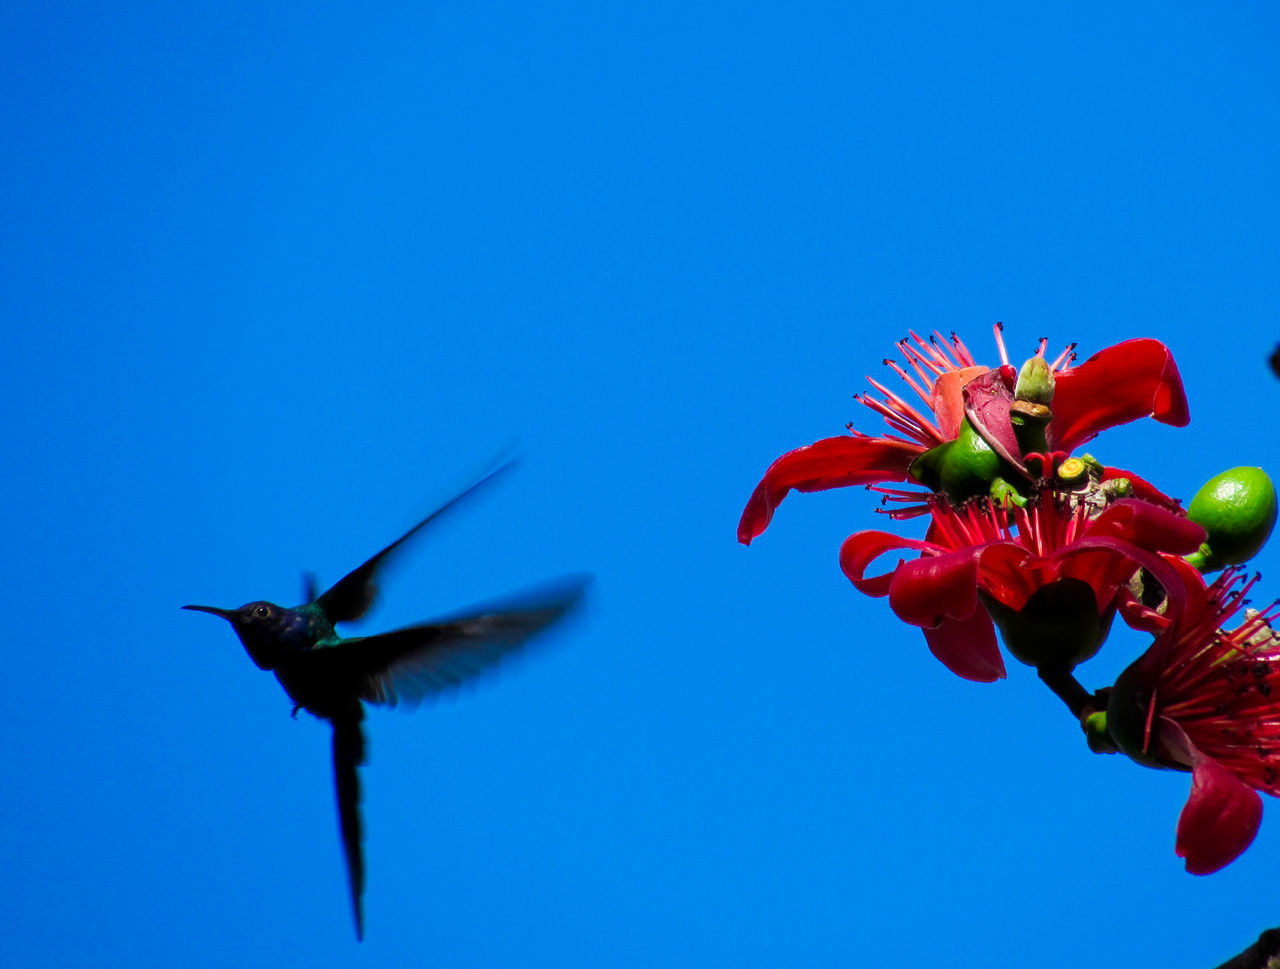 Hummingbird enjoying the flower Animal Animal Themes Animals In The Wild Beauty In Nature Bird Bird Photography Birds Birds_collection Blue Clear Sky Close-up Day Flower Flowers Flying Fragility Hummingbird Hummingbirds Nature No People One Animal Outdoors Wing Wings Winter